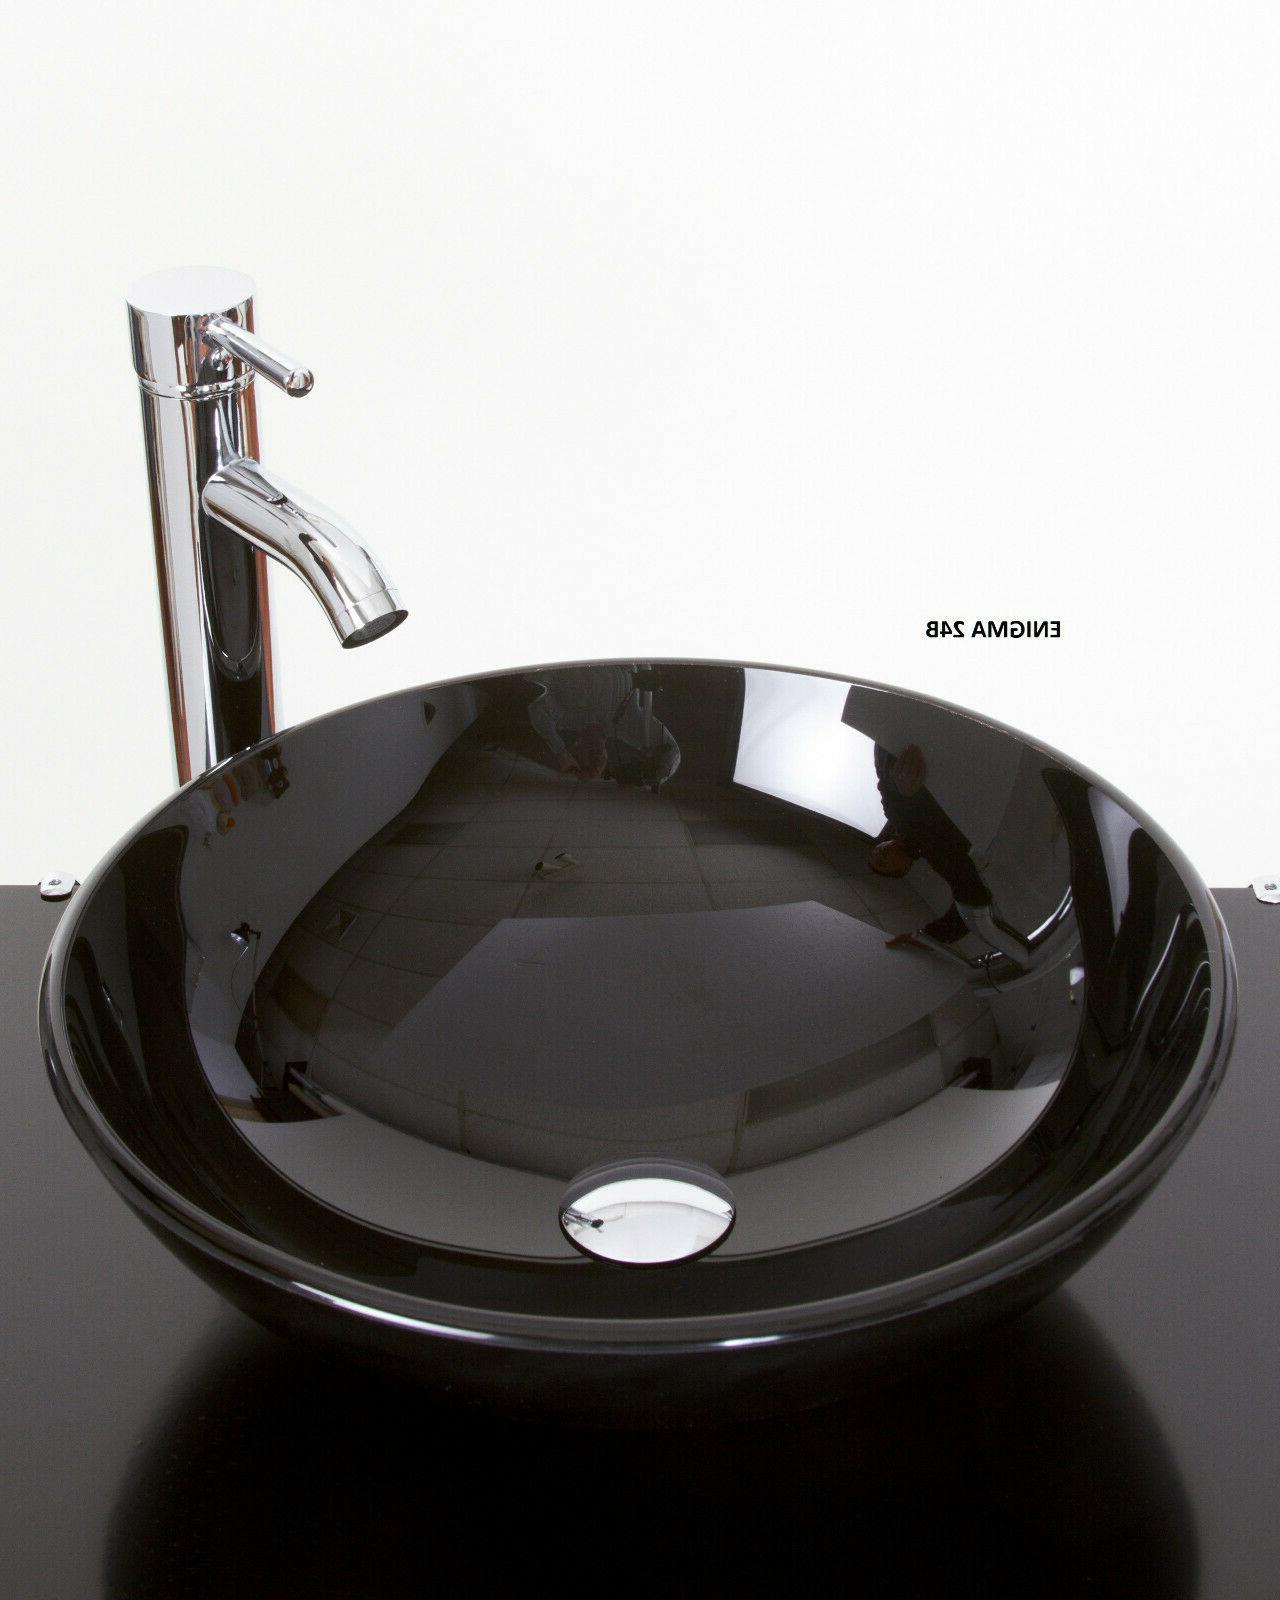 Bathroom Vessel Sink Pedestal Faucet and